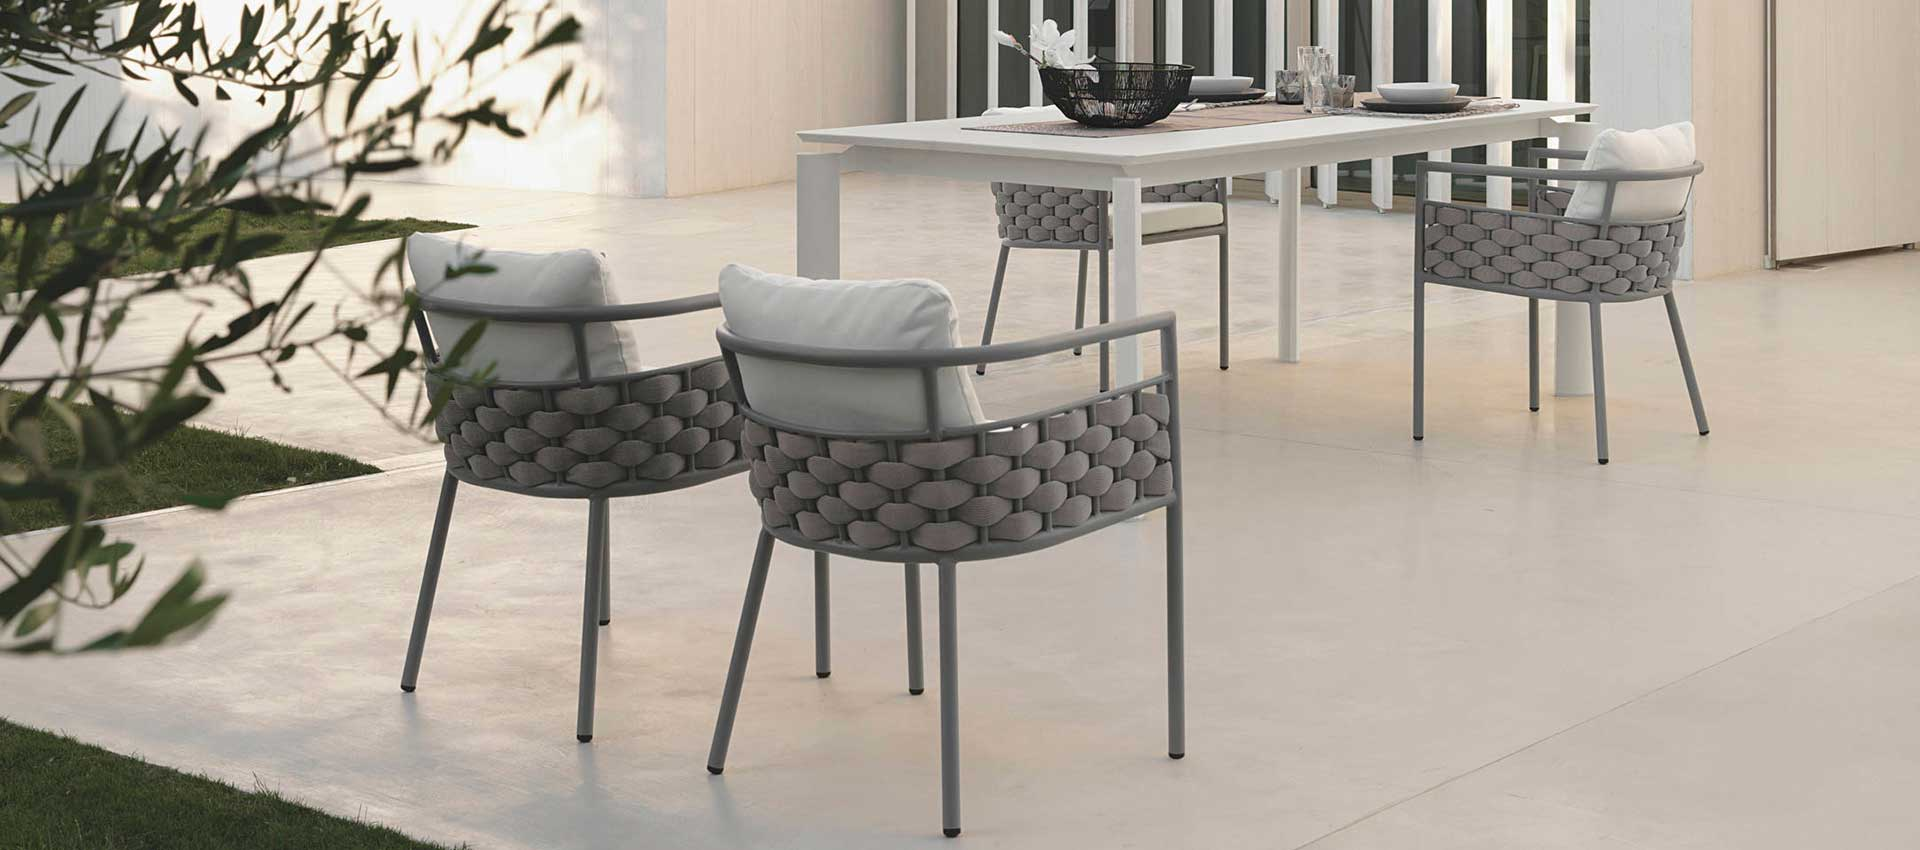 Outdoor - tables - dining armchairs